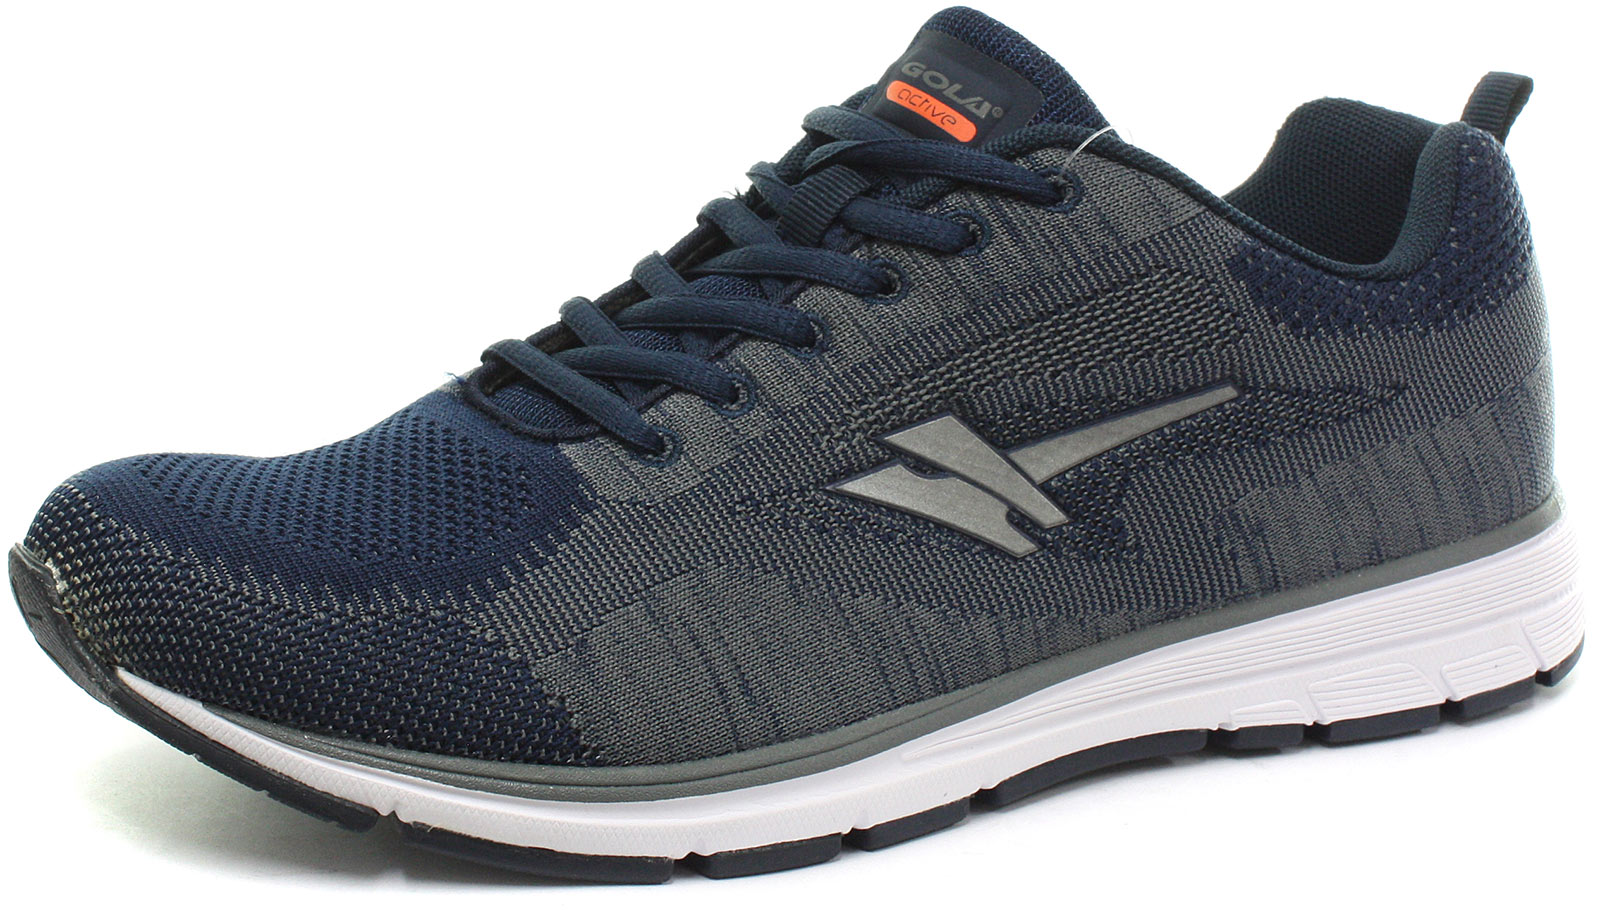 New Gola Active Fortuna Navy Mens Running Trainers ALL SIZES